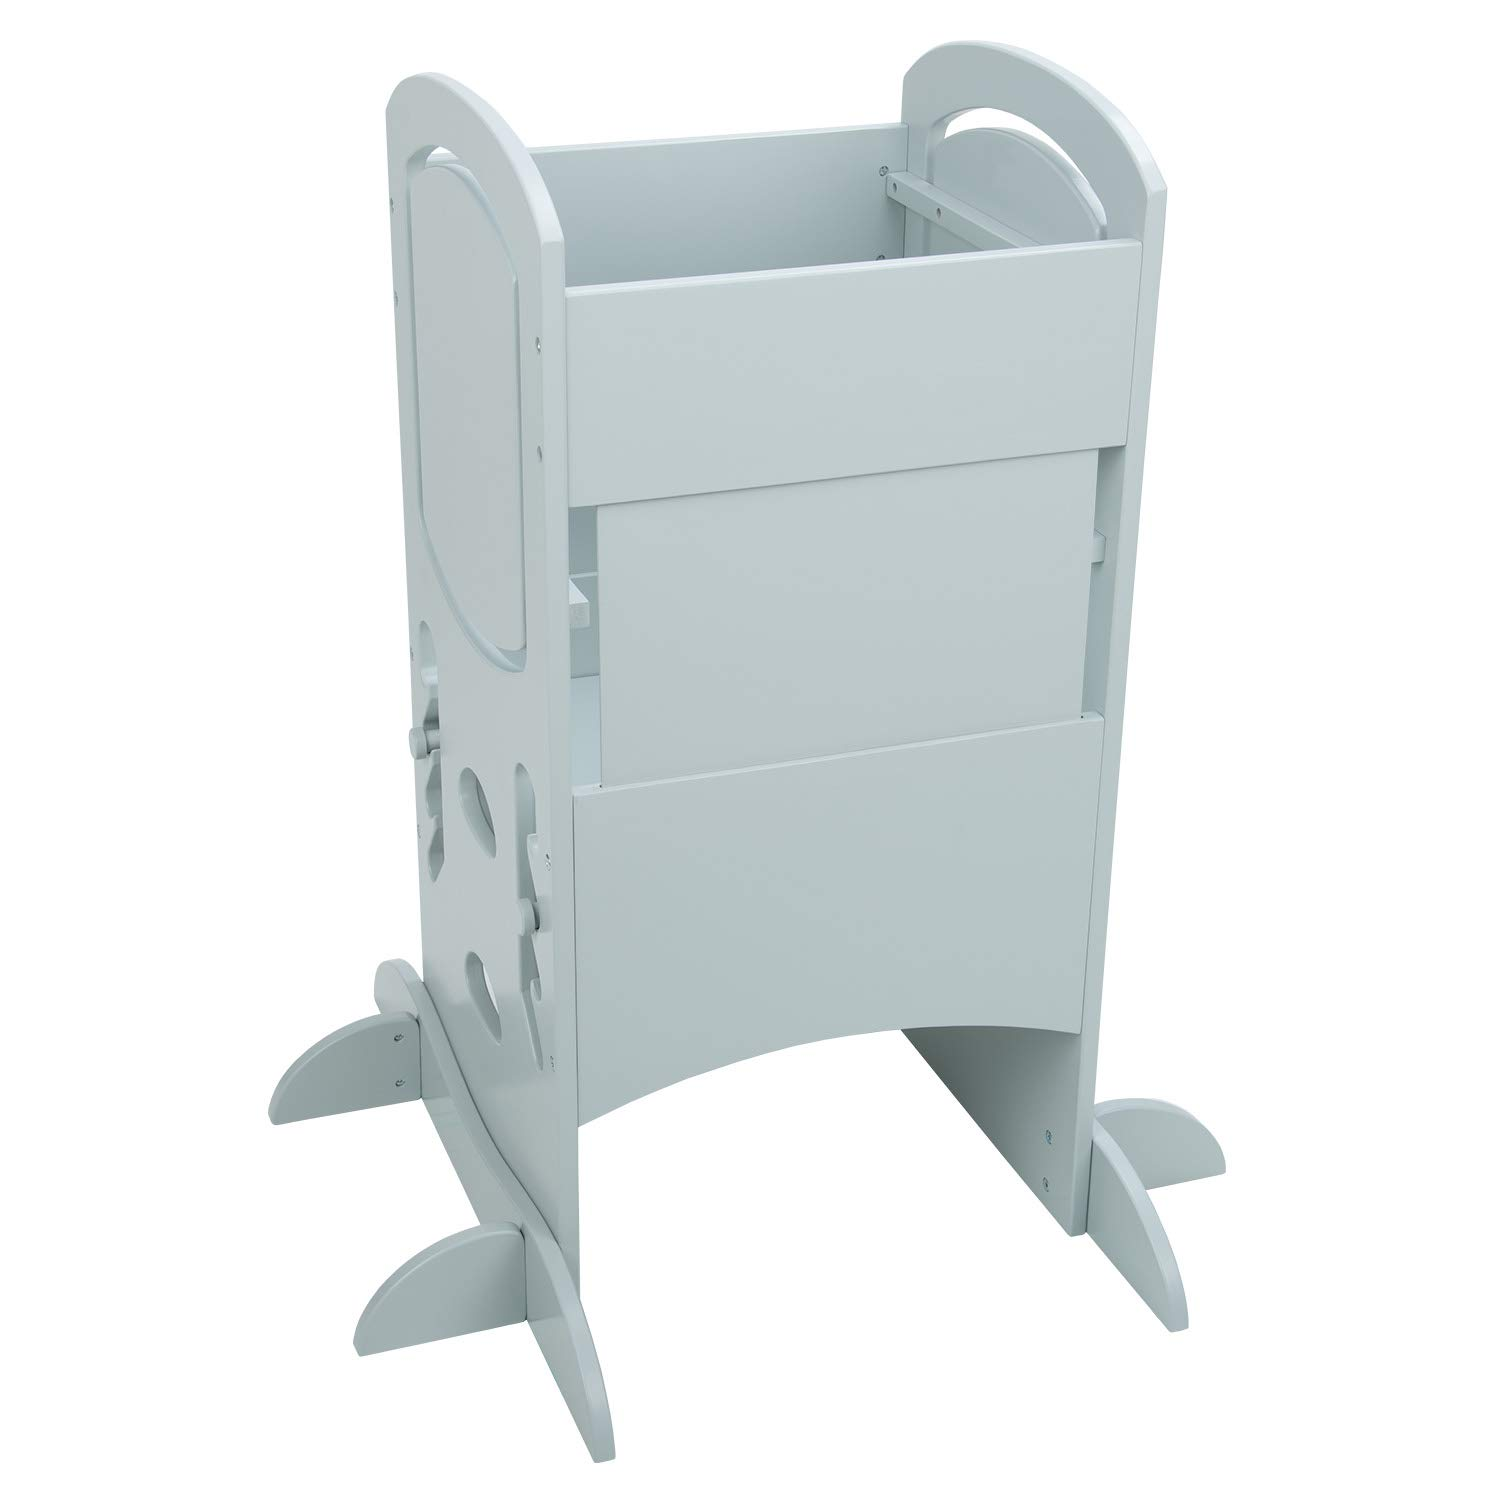 Plywood//Grey KiddyMoon Wooden Kitchen Helper Step Stool for Kids Toddlers ST-002